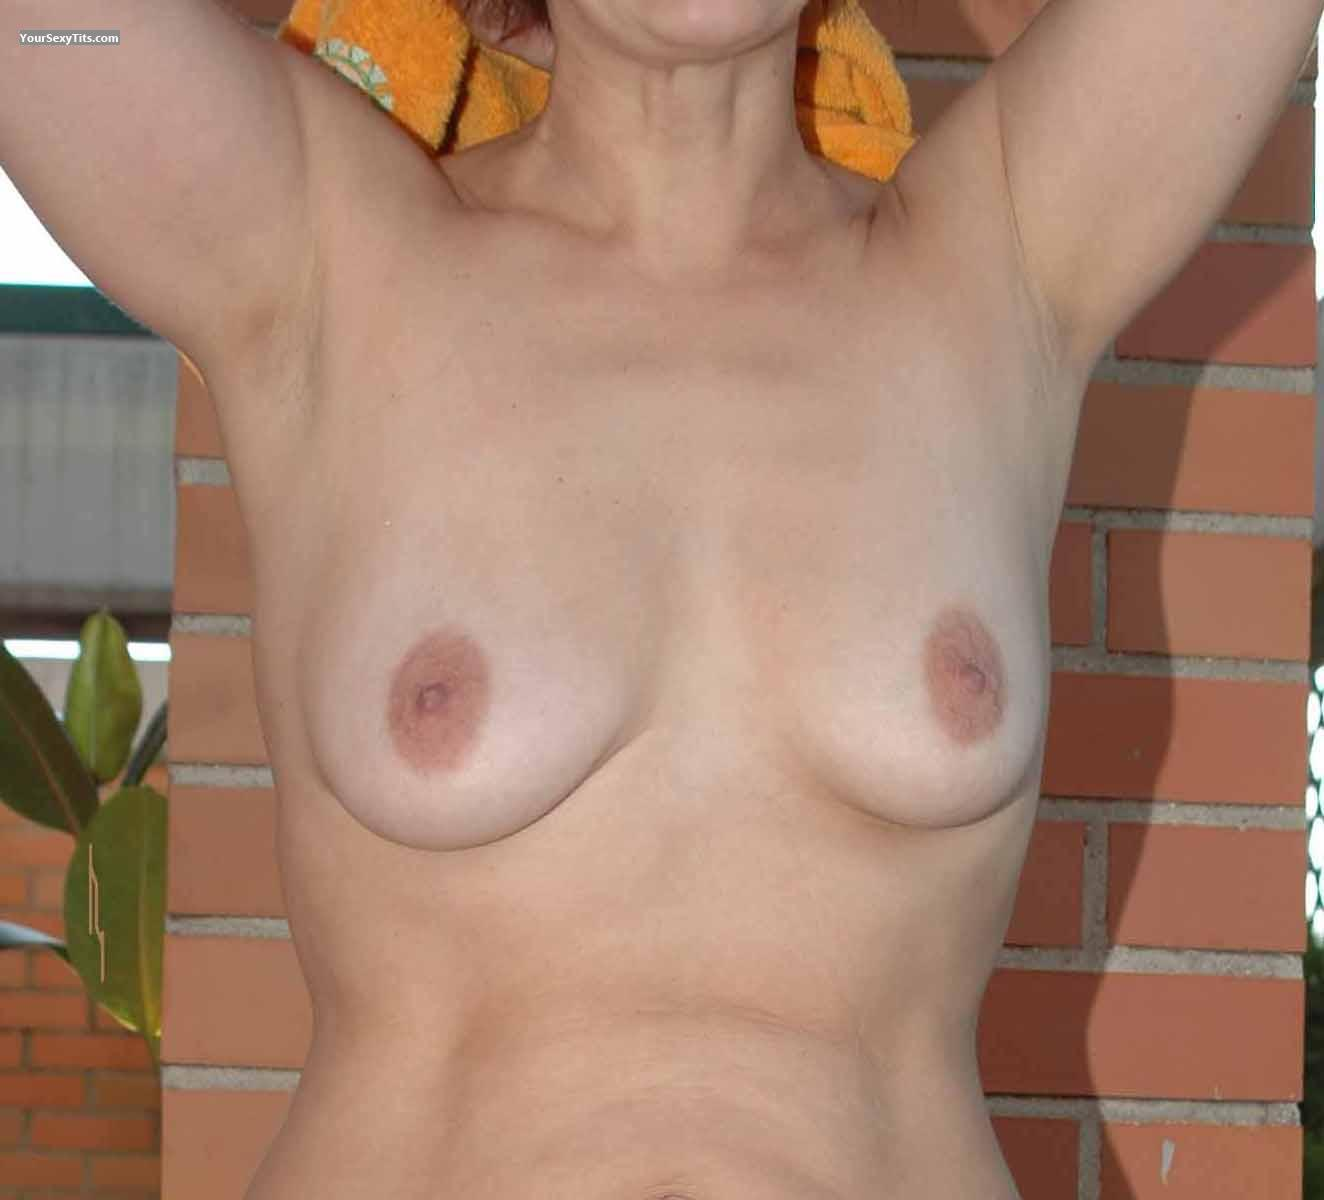 Tit Flash: Medium Tits - Pigui from Spain